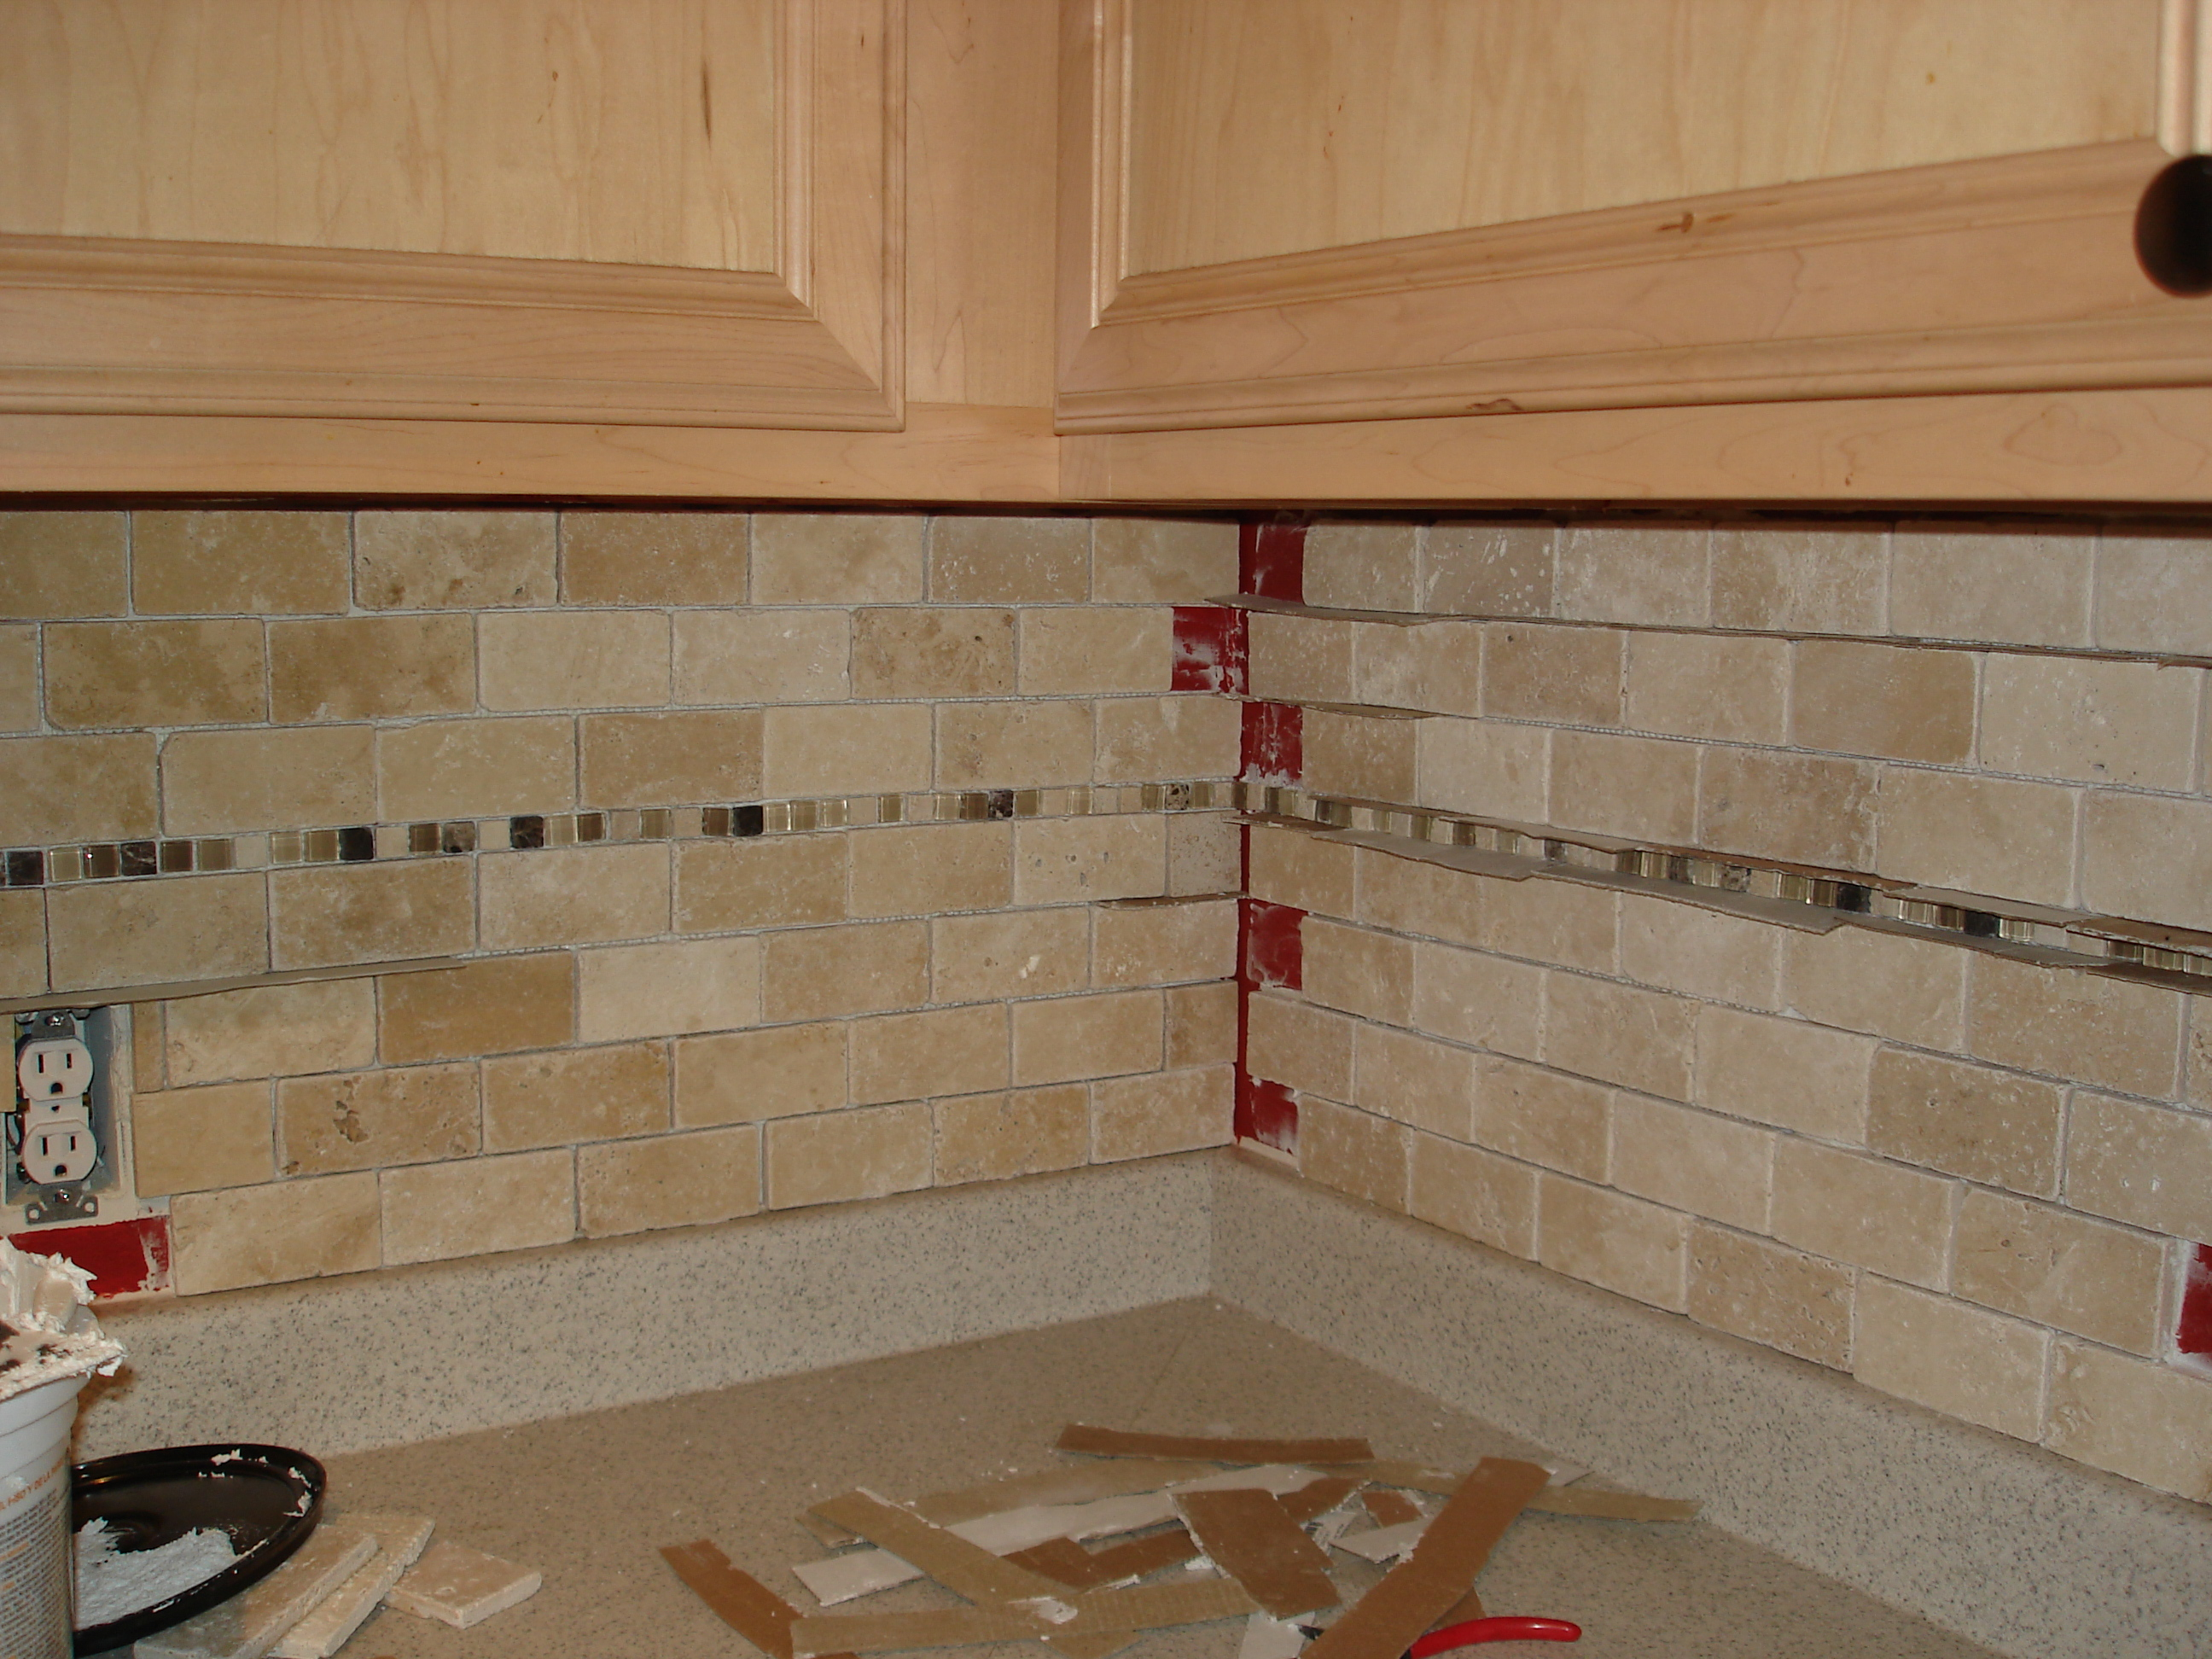 How To Put Tile On Wall In The Kitchen